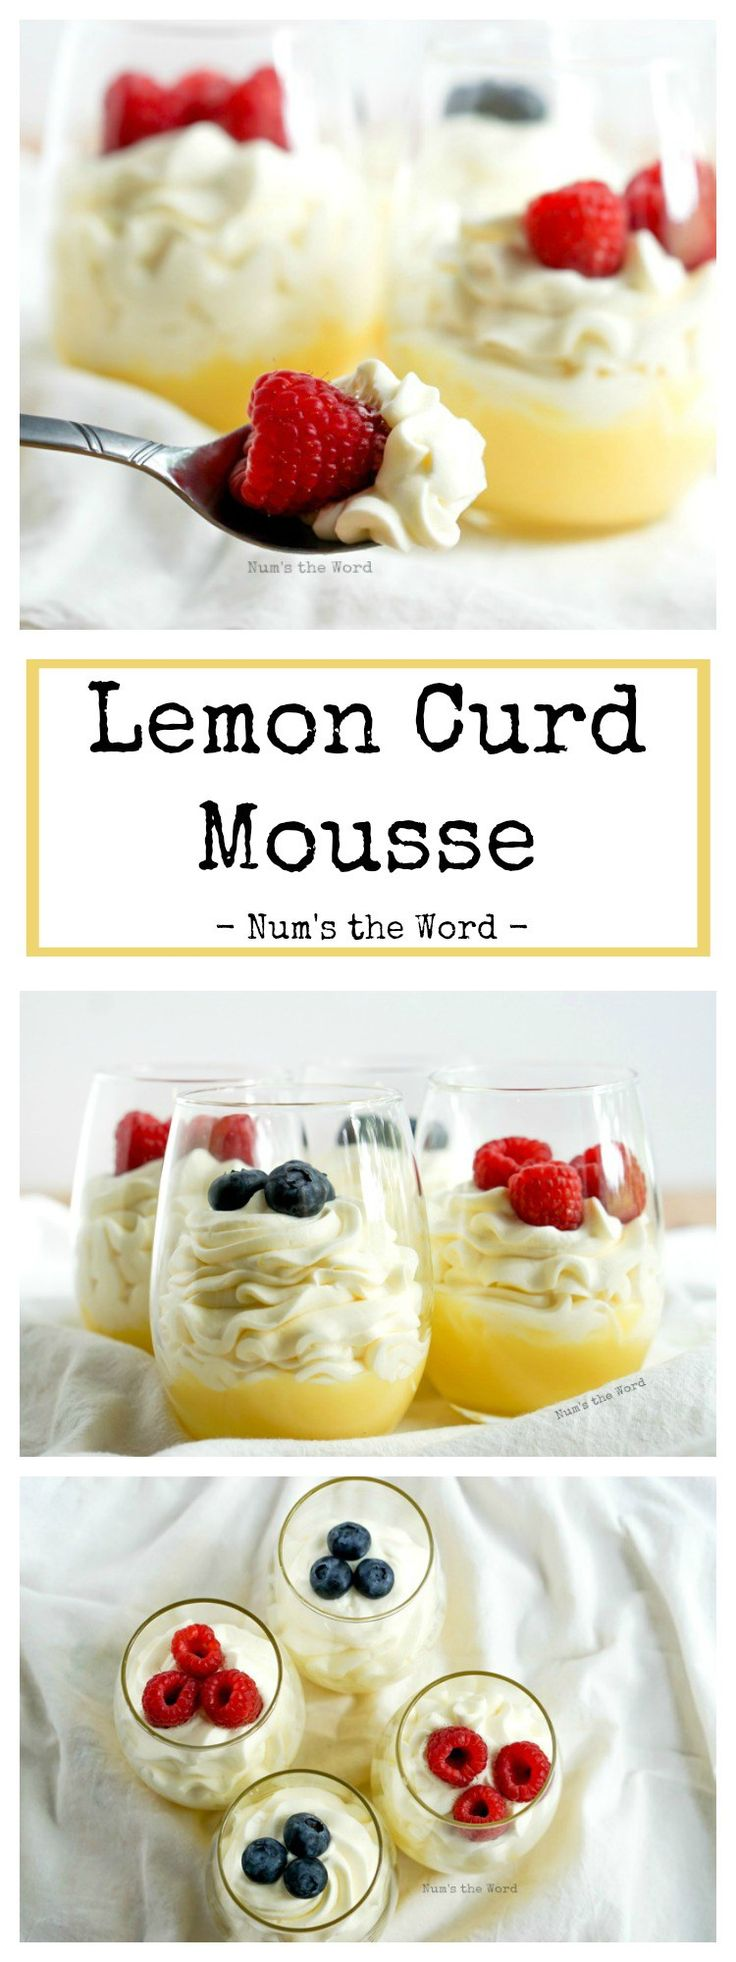 This 10 minute lemon curd mousse dessert is light, refreshing and one of our favorites. Any lemon lover will eat this up and ask for seconds!